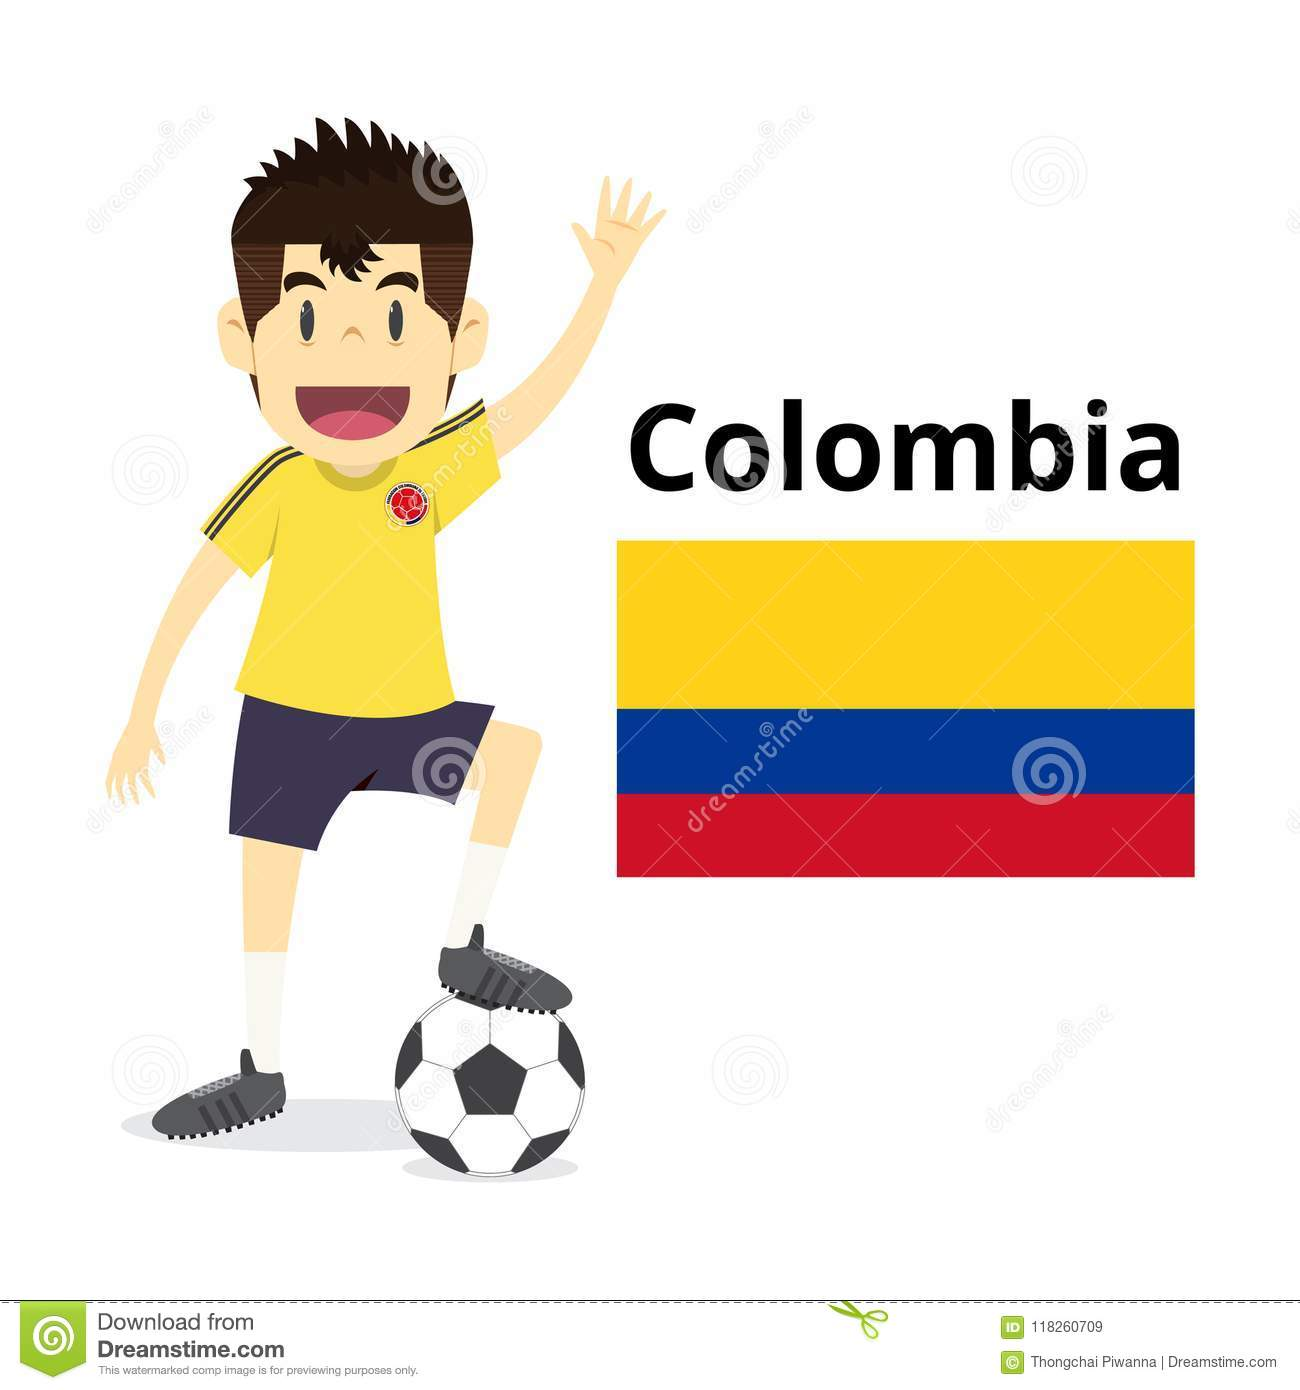 Royalty-Free Vector. Colombia nation team cartoon a19d27bce